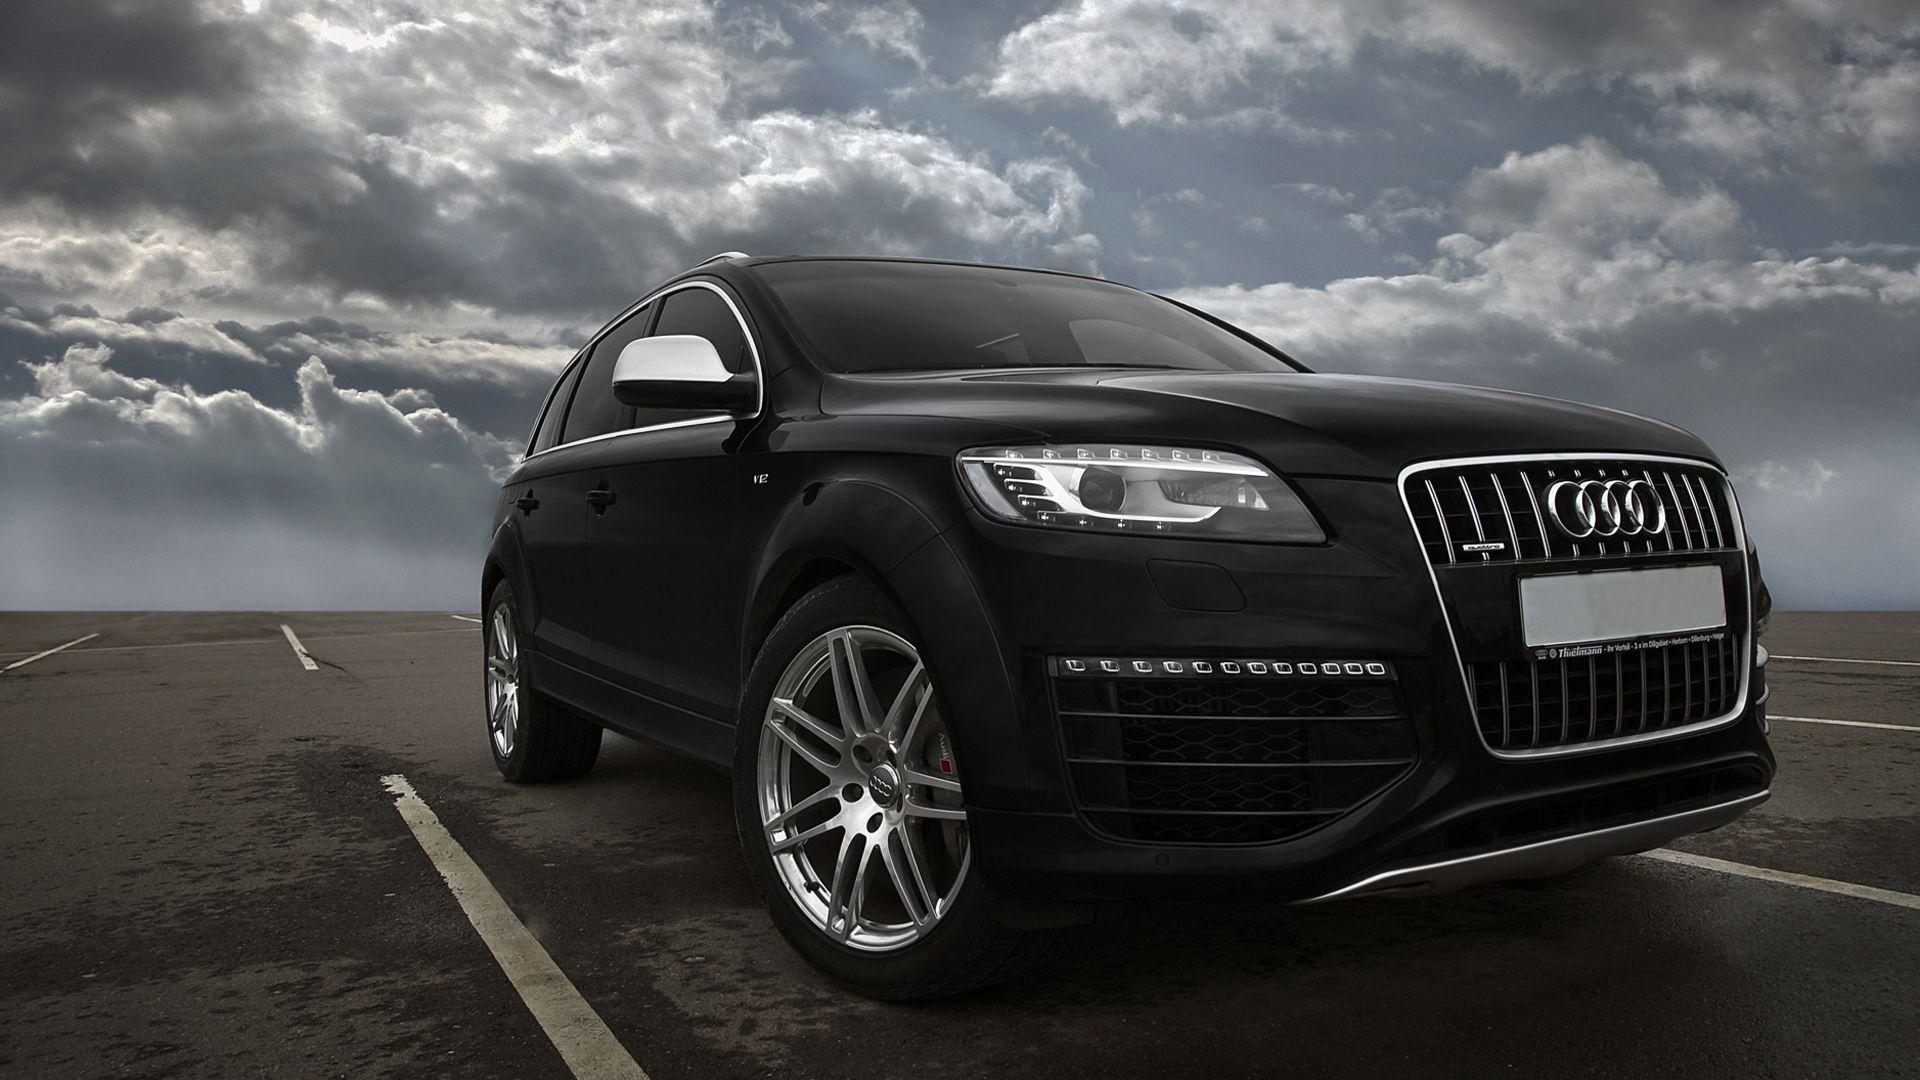 Interesting Audi Q7 HDQ Image Collection, HQ Definition Wallpapers